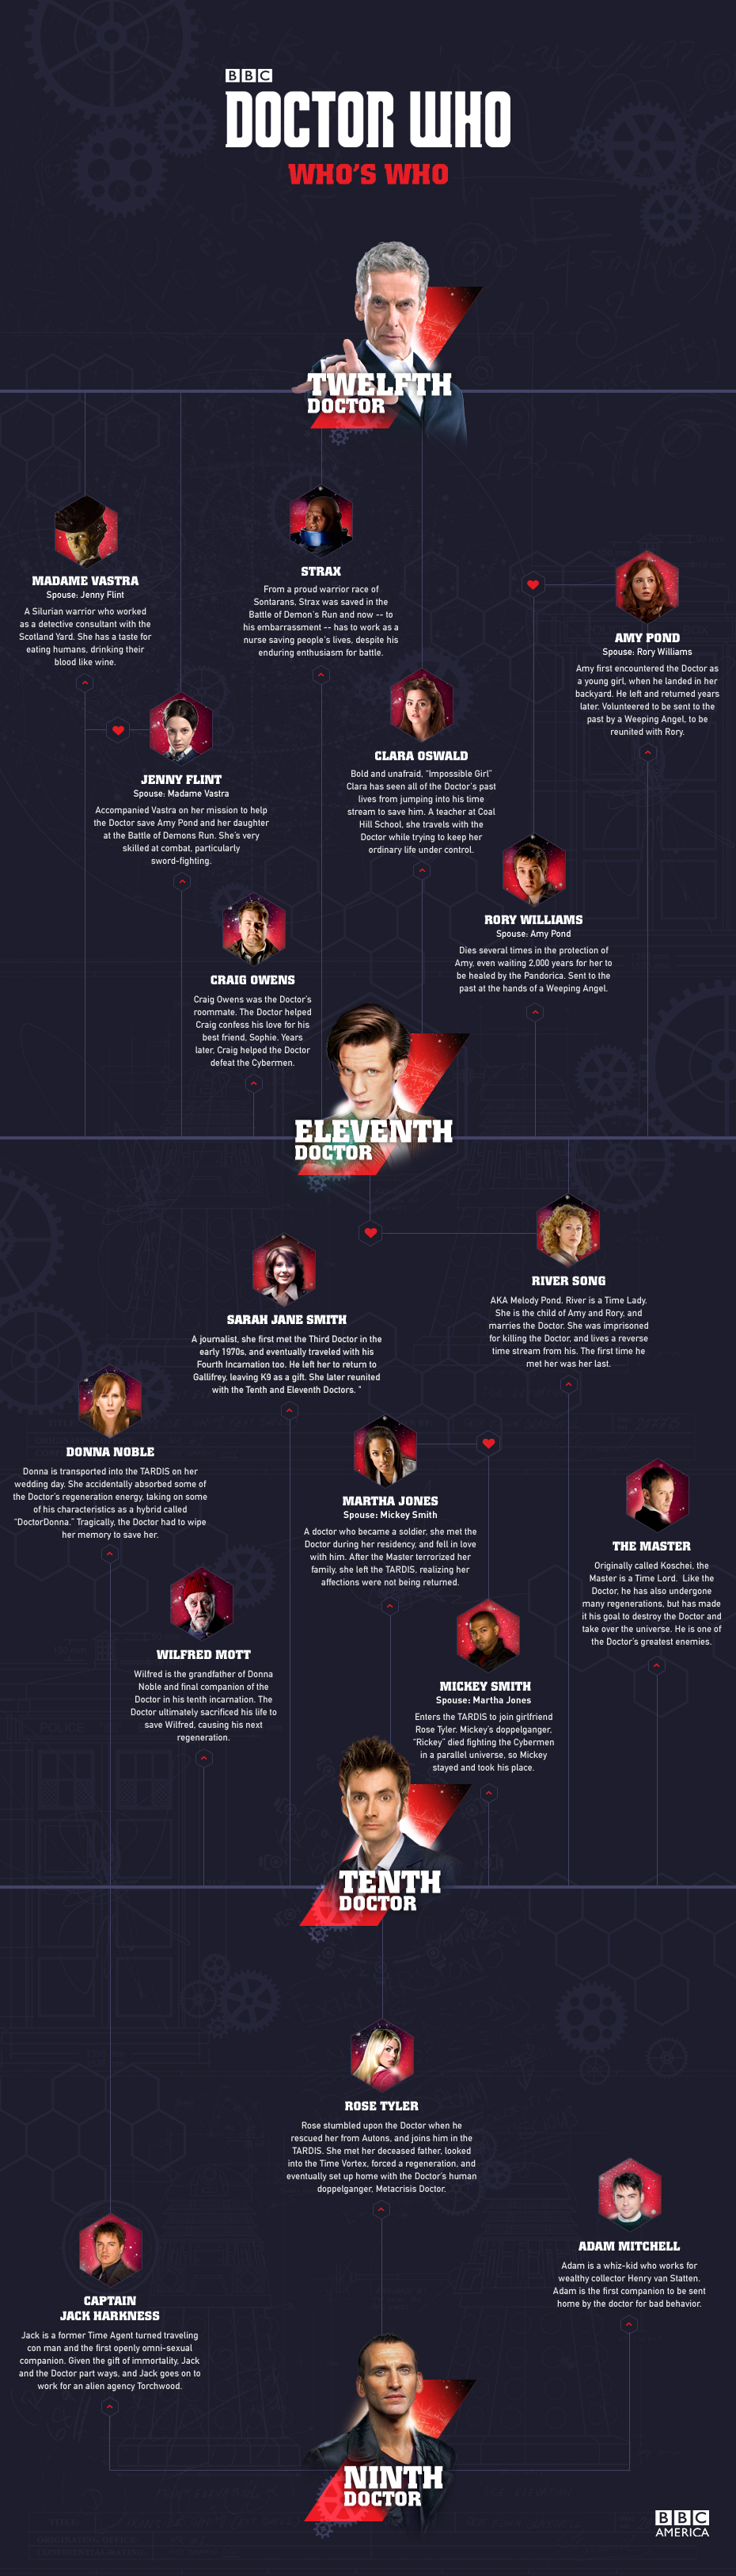 Doctor Who Who S Who Family Tree Bbc America